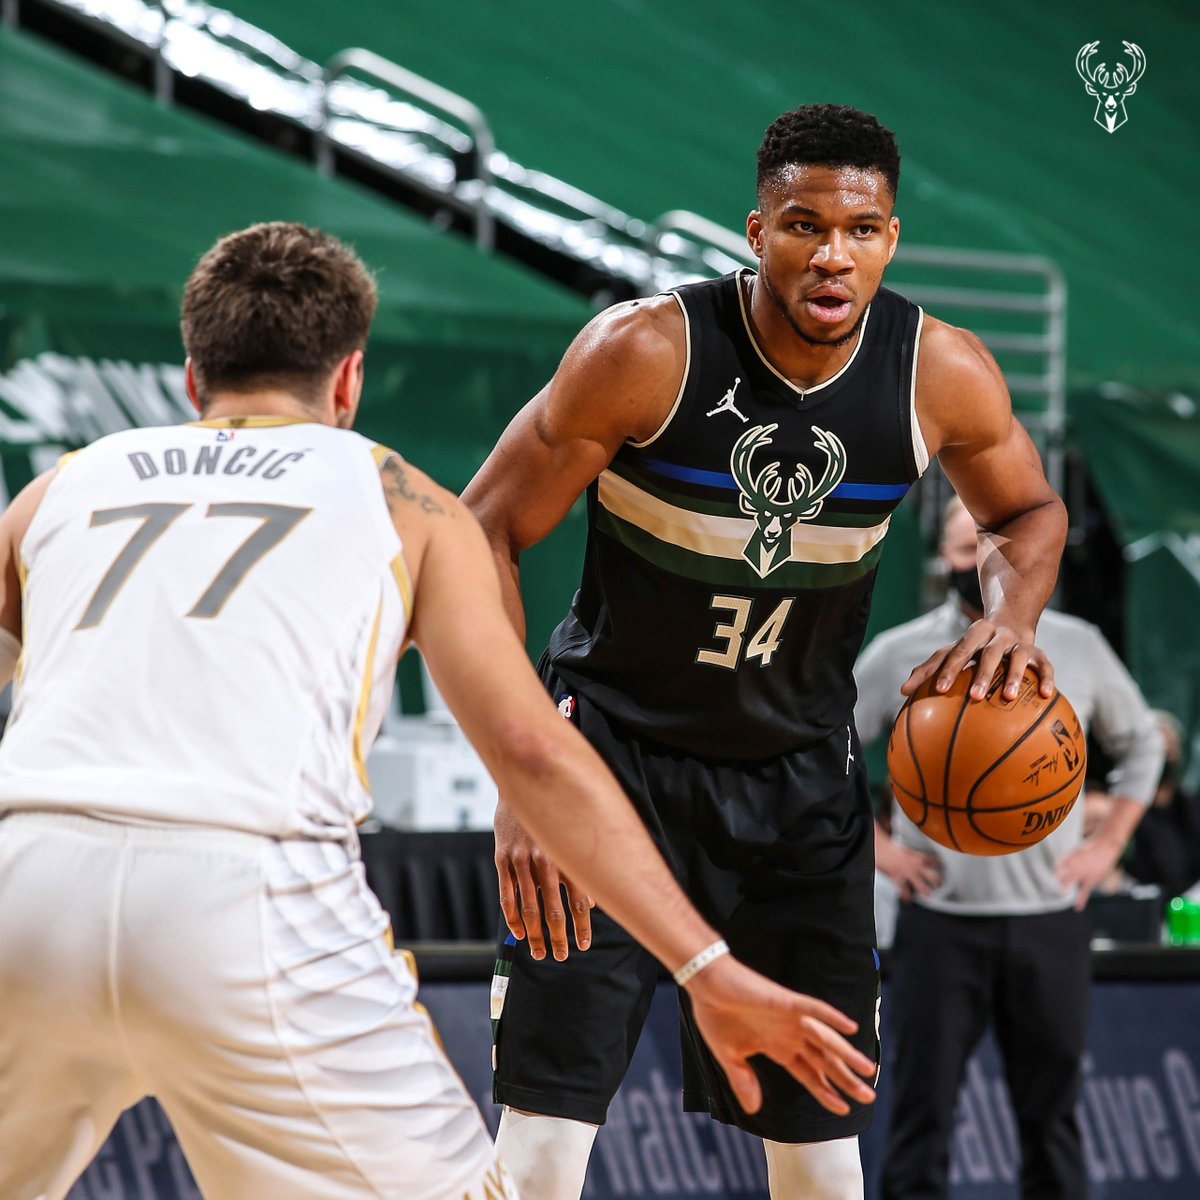 The Greek Freak hit up the Mavs for 31 points and the WIN. https://t.co/OlPlpgZ16a